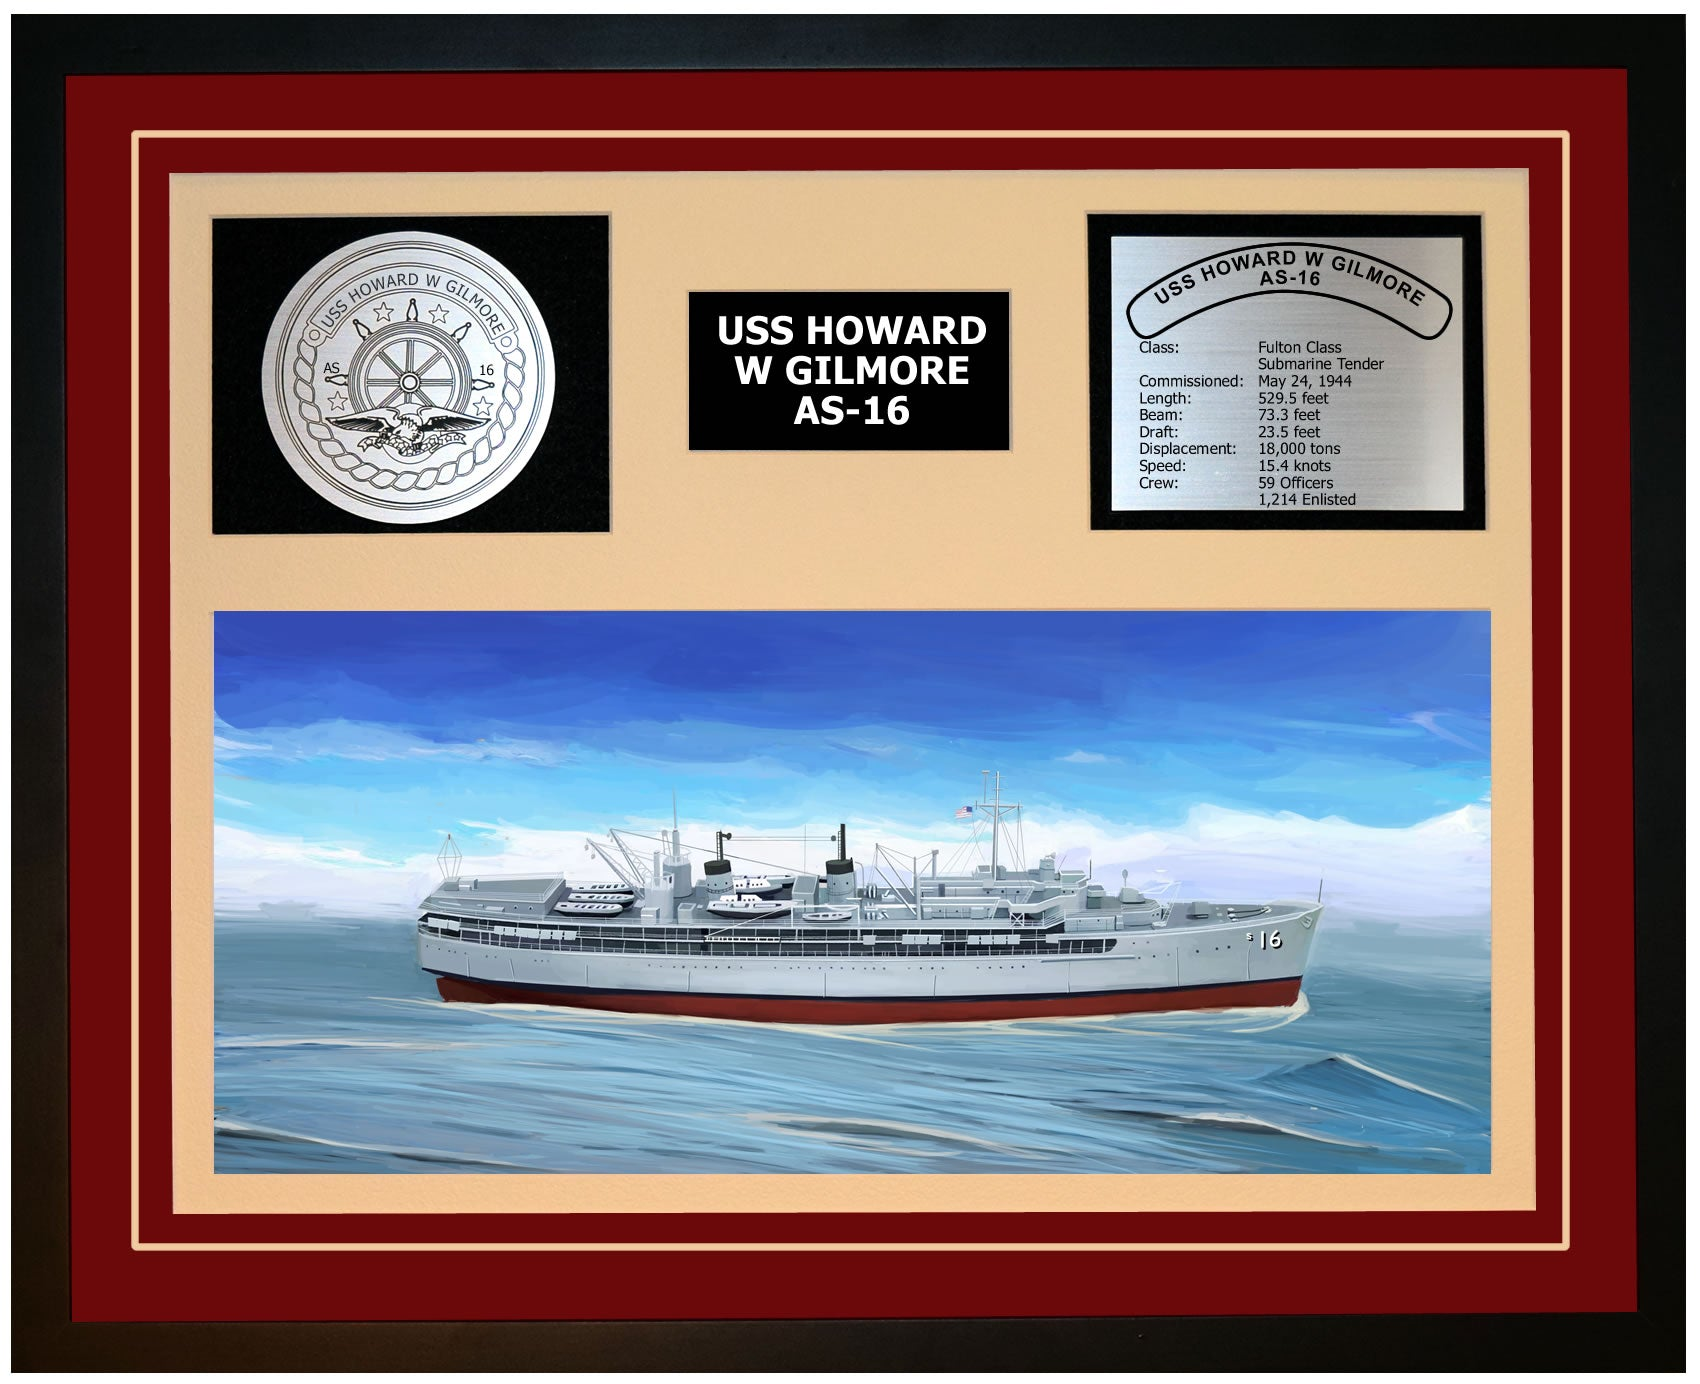 USS HOWARD W GILMORE AS-16 Framed Navy Ship Display Burgundy